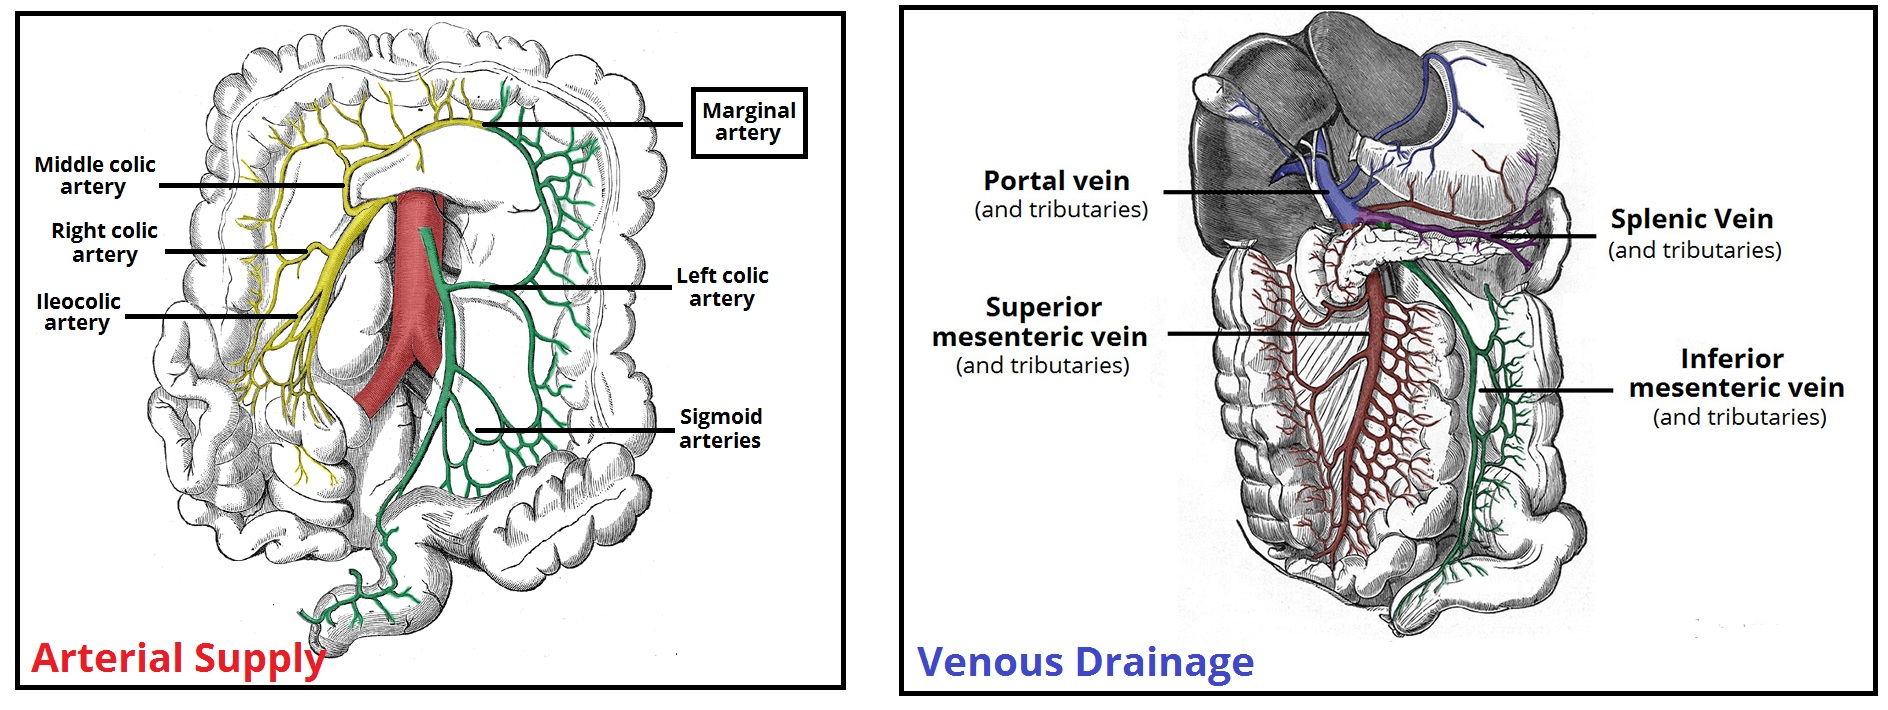 hight resolution of fig 3 the major arteries and veins supplying the colon